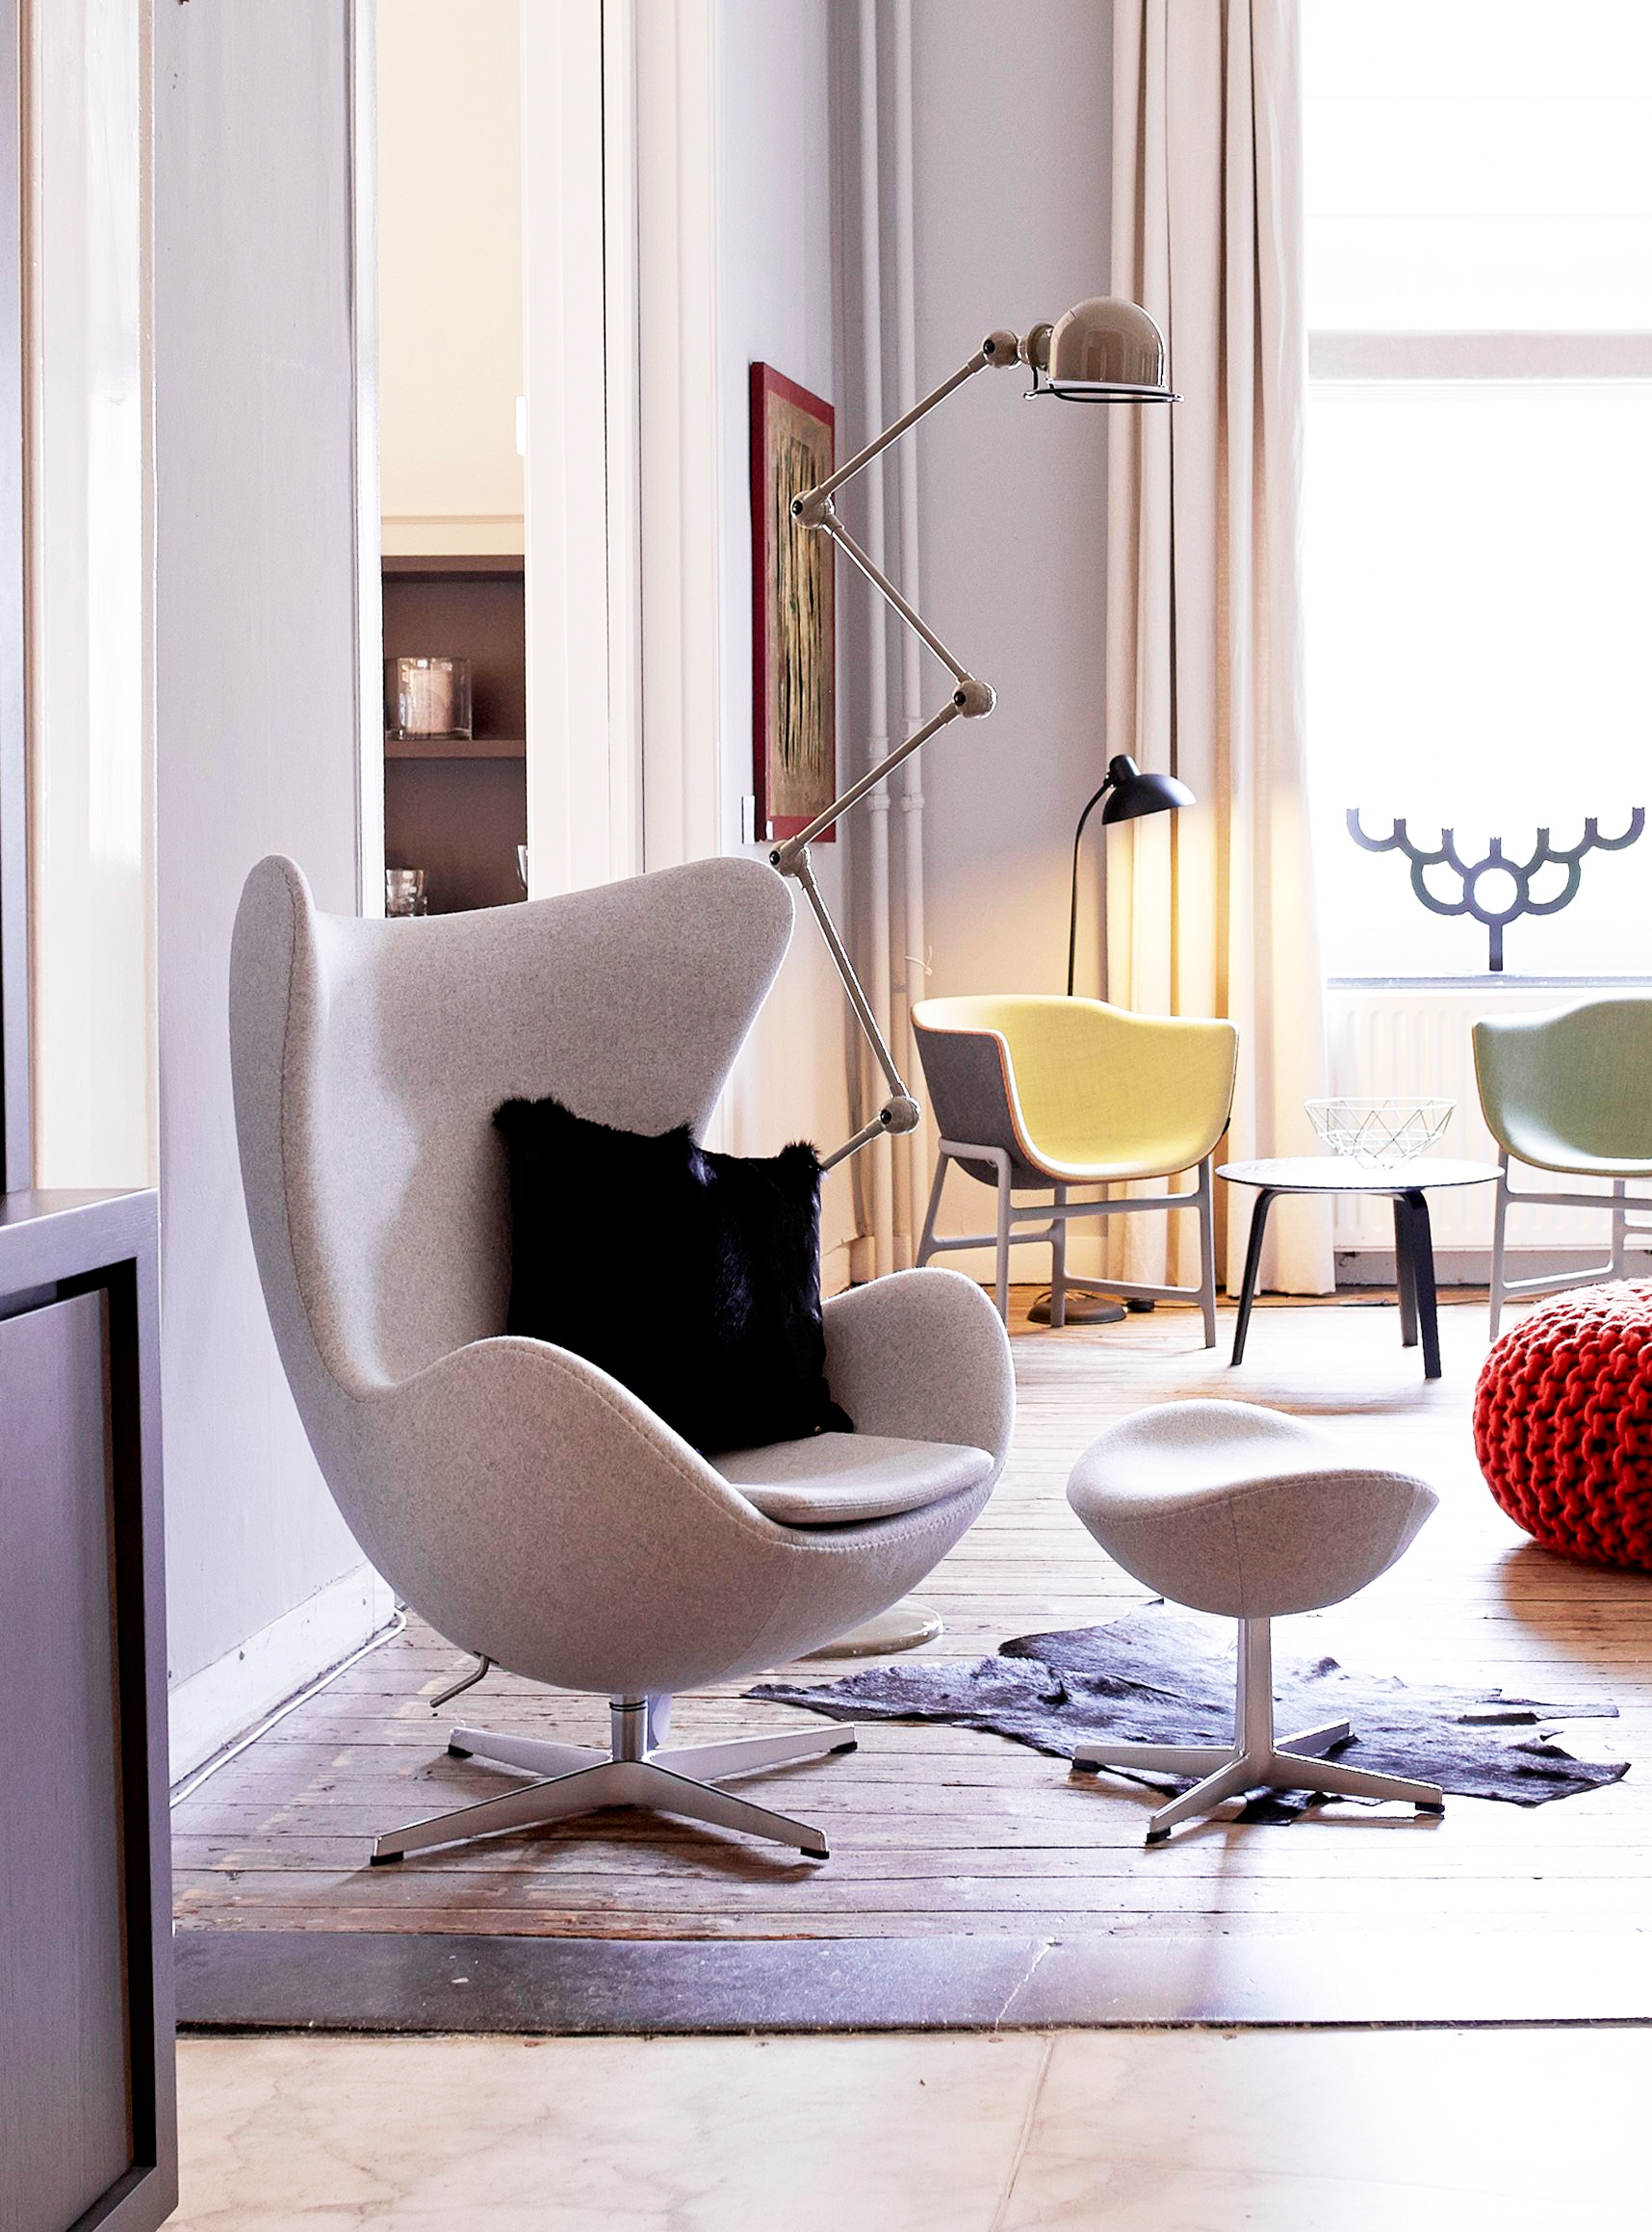 Poltrona Egg Jacobsen.Poltrona Egg 間取り In 2019 Egg Chair Armchair Stool